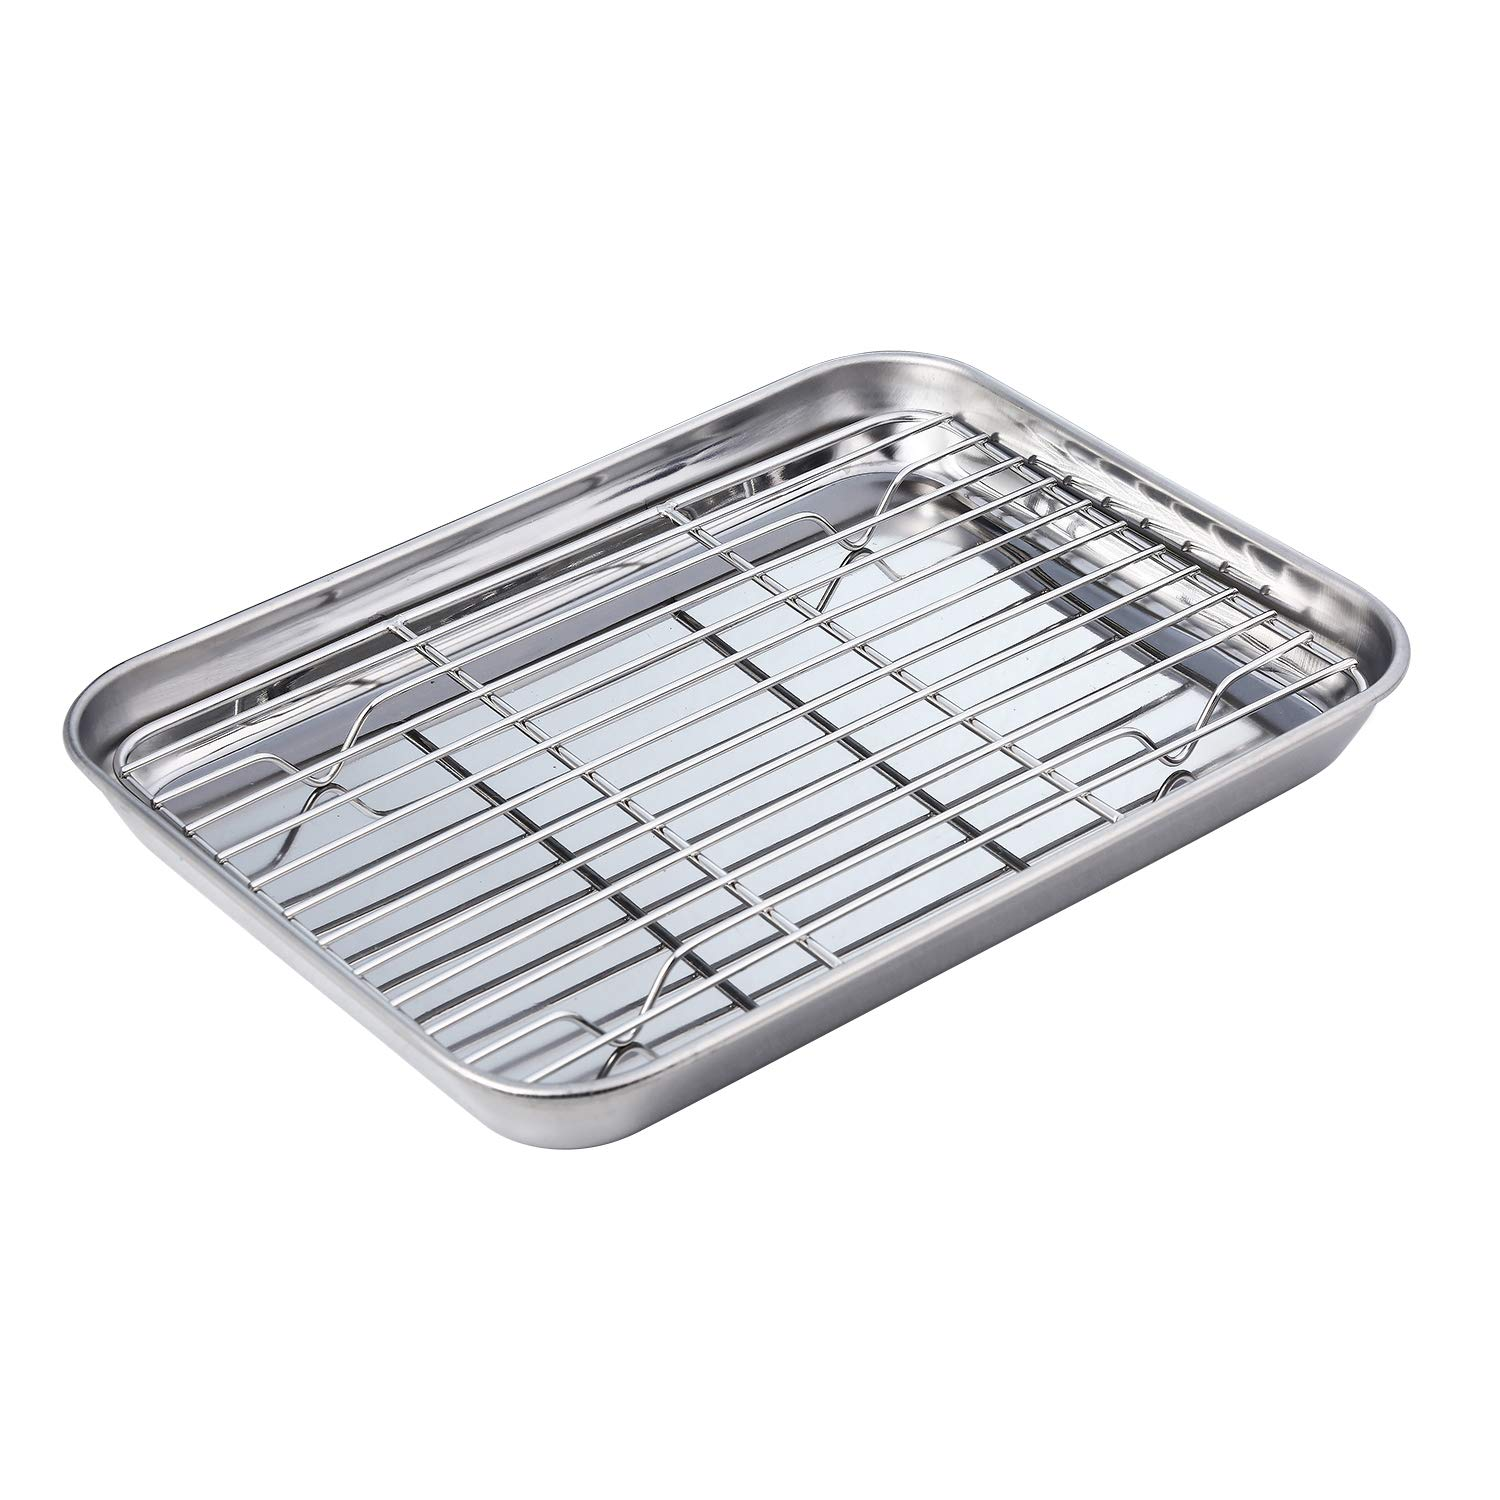 Stainless Steel Baking Sheet with Rack Set Tray Cookie Sheet & Oven Pan (Size 9 3/8 x 7 x 1 inch, Non Toxic & Healthy, Rust Free & Less Stick, Thick & Sturdy, Easy Clean & Dishwasher Safe)